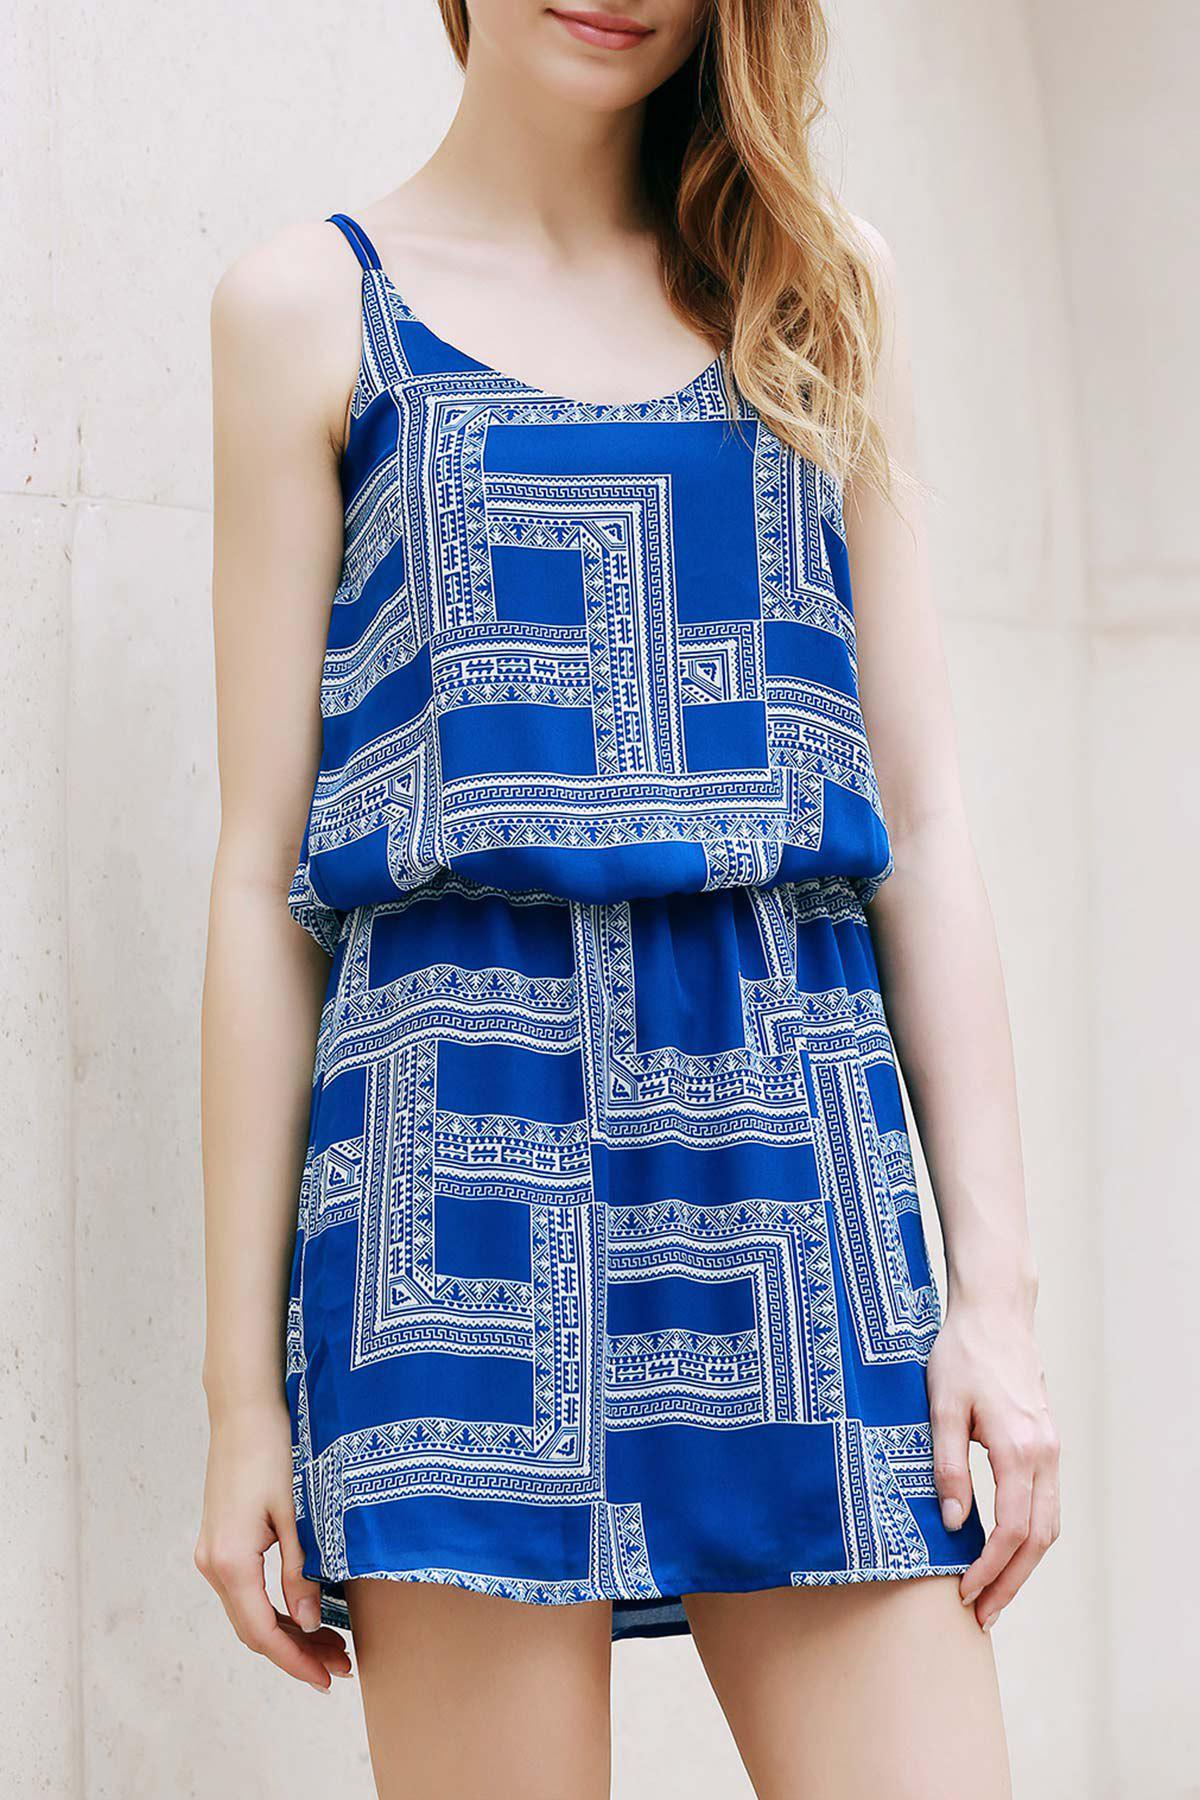 Trendy Spaghetti Strap Chiffon Geometric Print Women's Dress - SAPPHIRE BLUE S